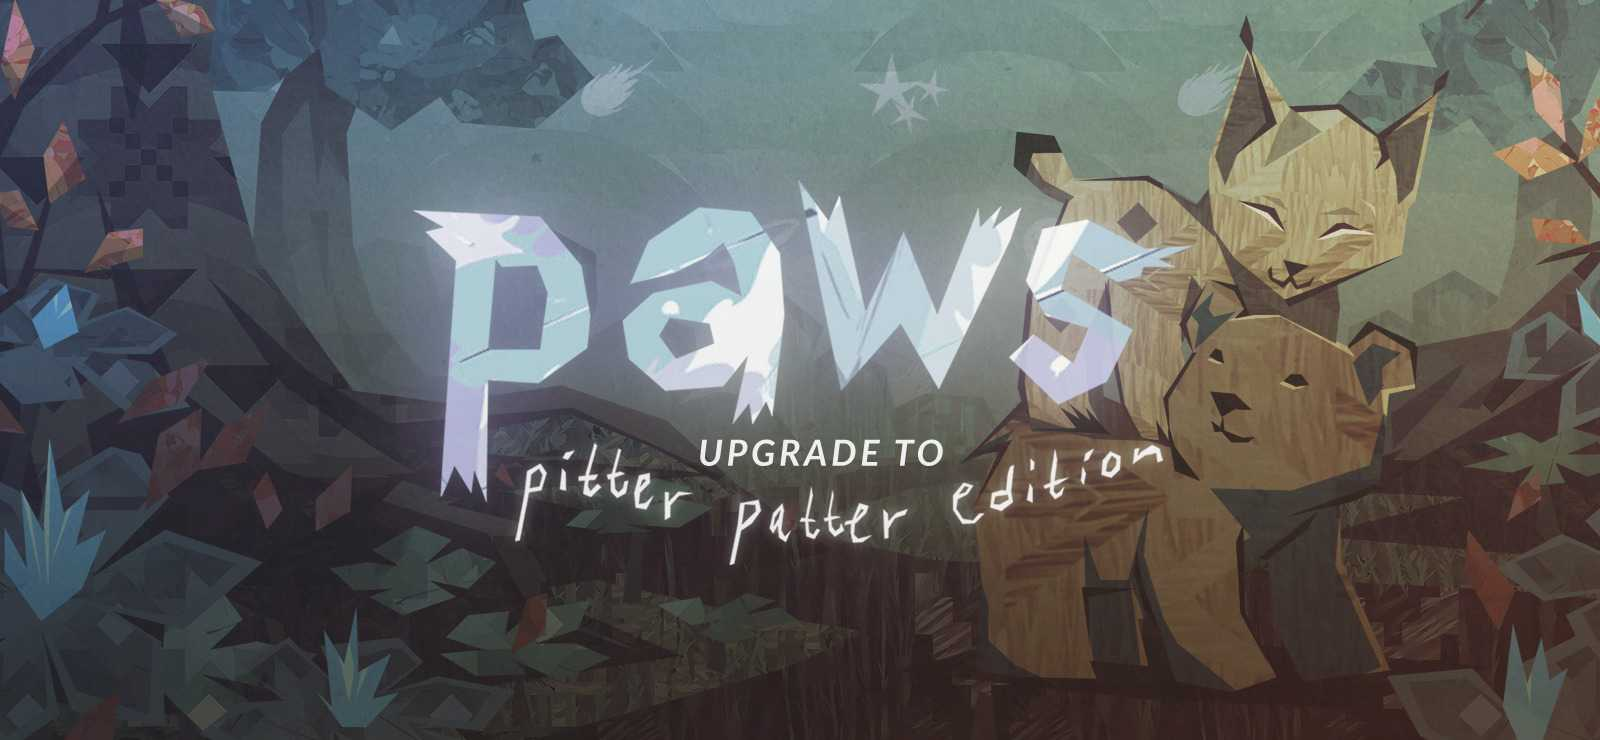 Paws: Upgrade to Pitter Patter Edition